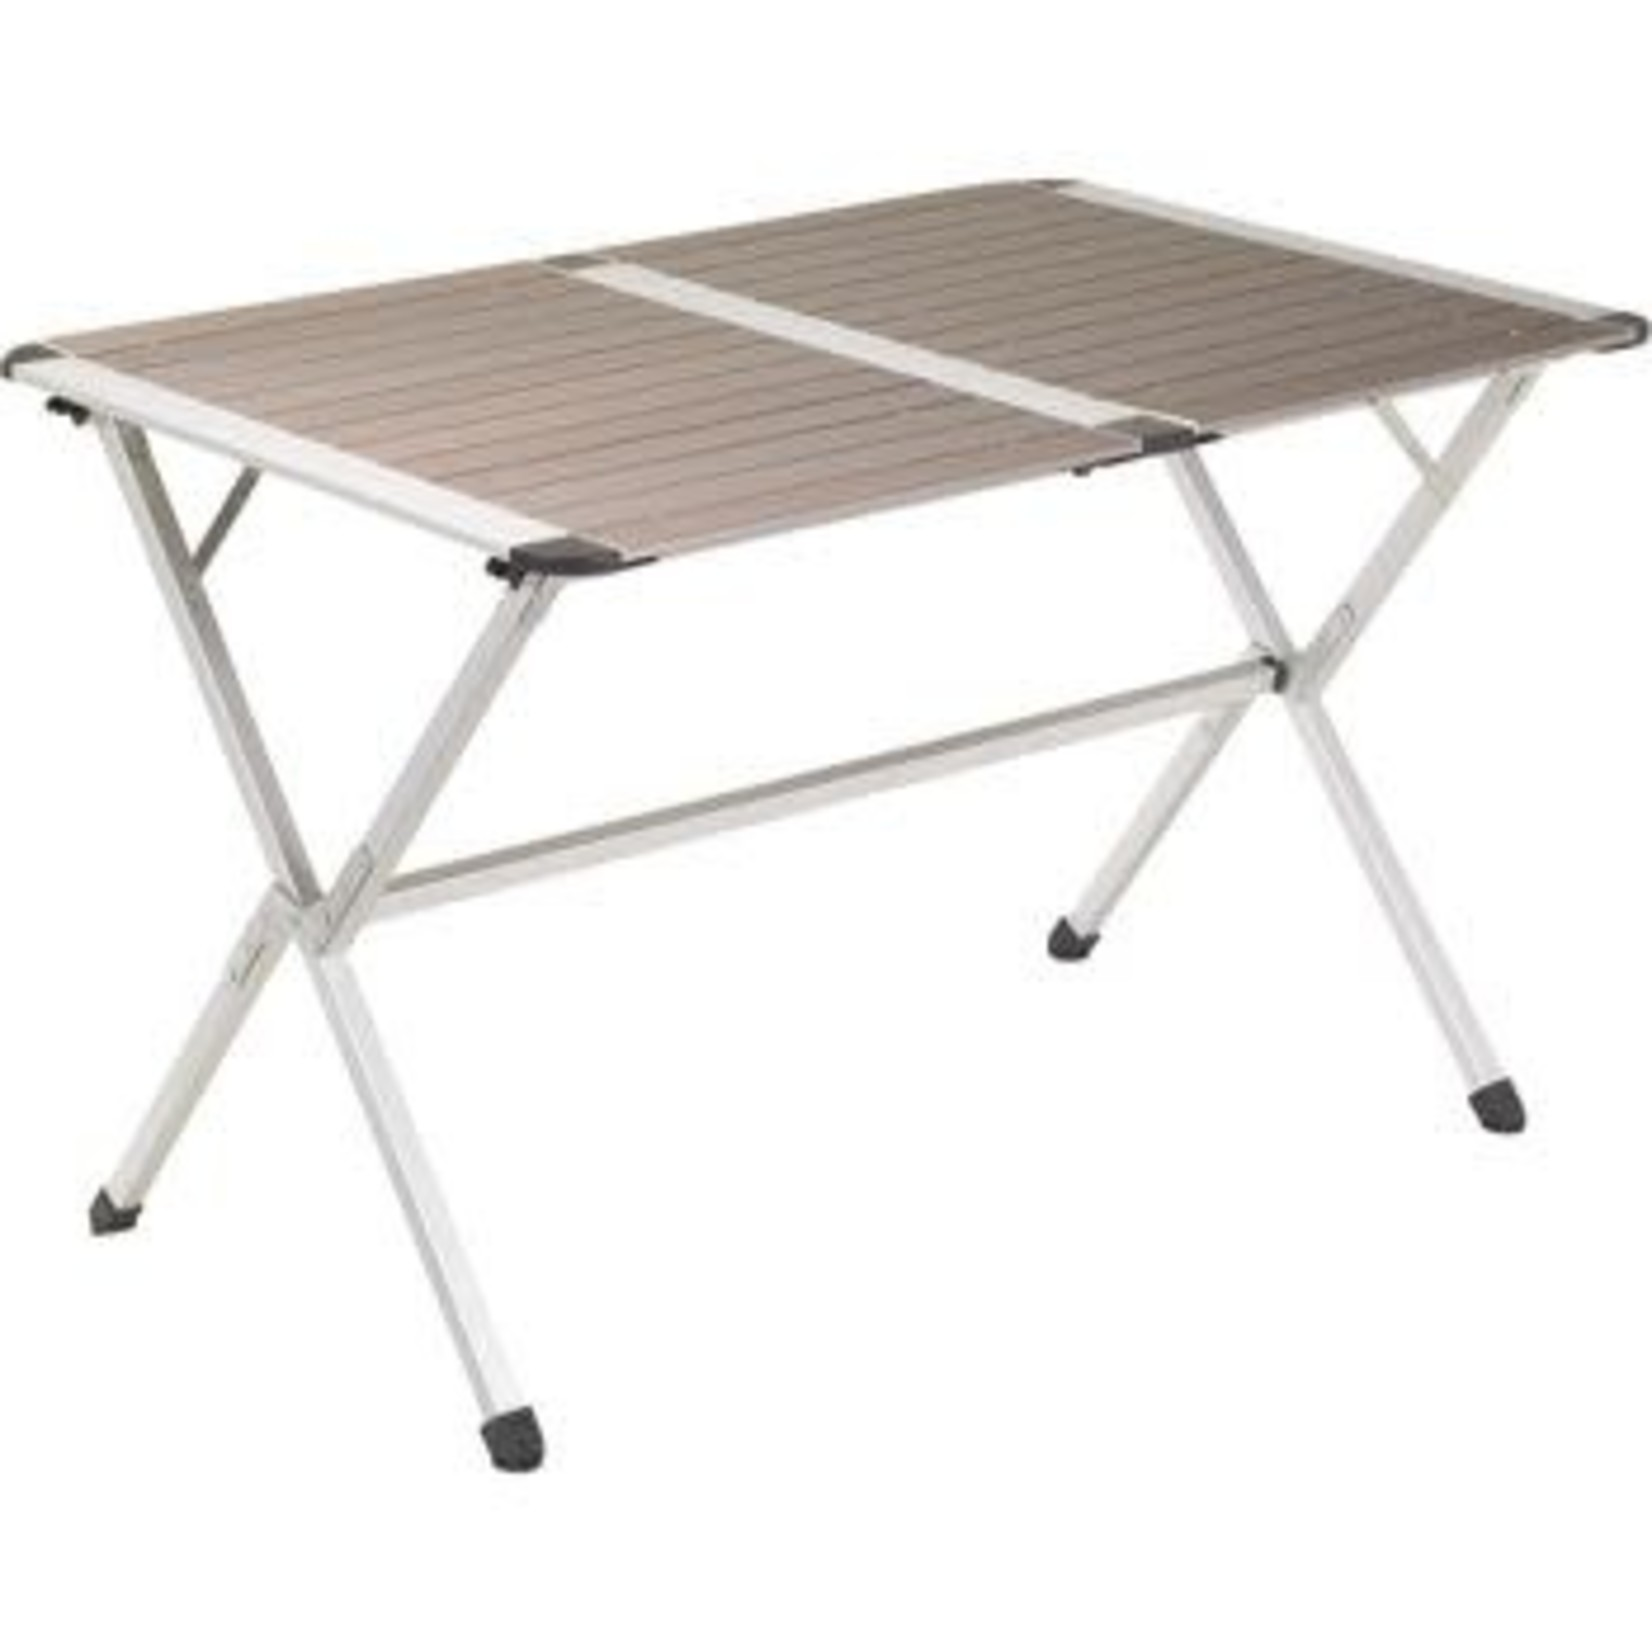 Outbound Double Roll-up Aluminium Camp Table